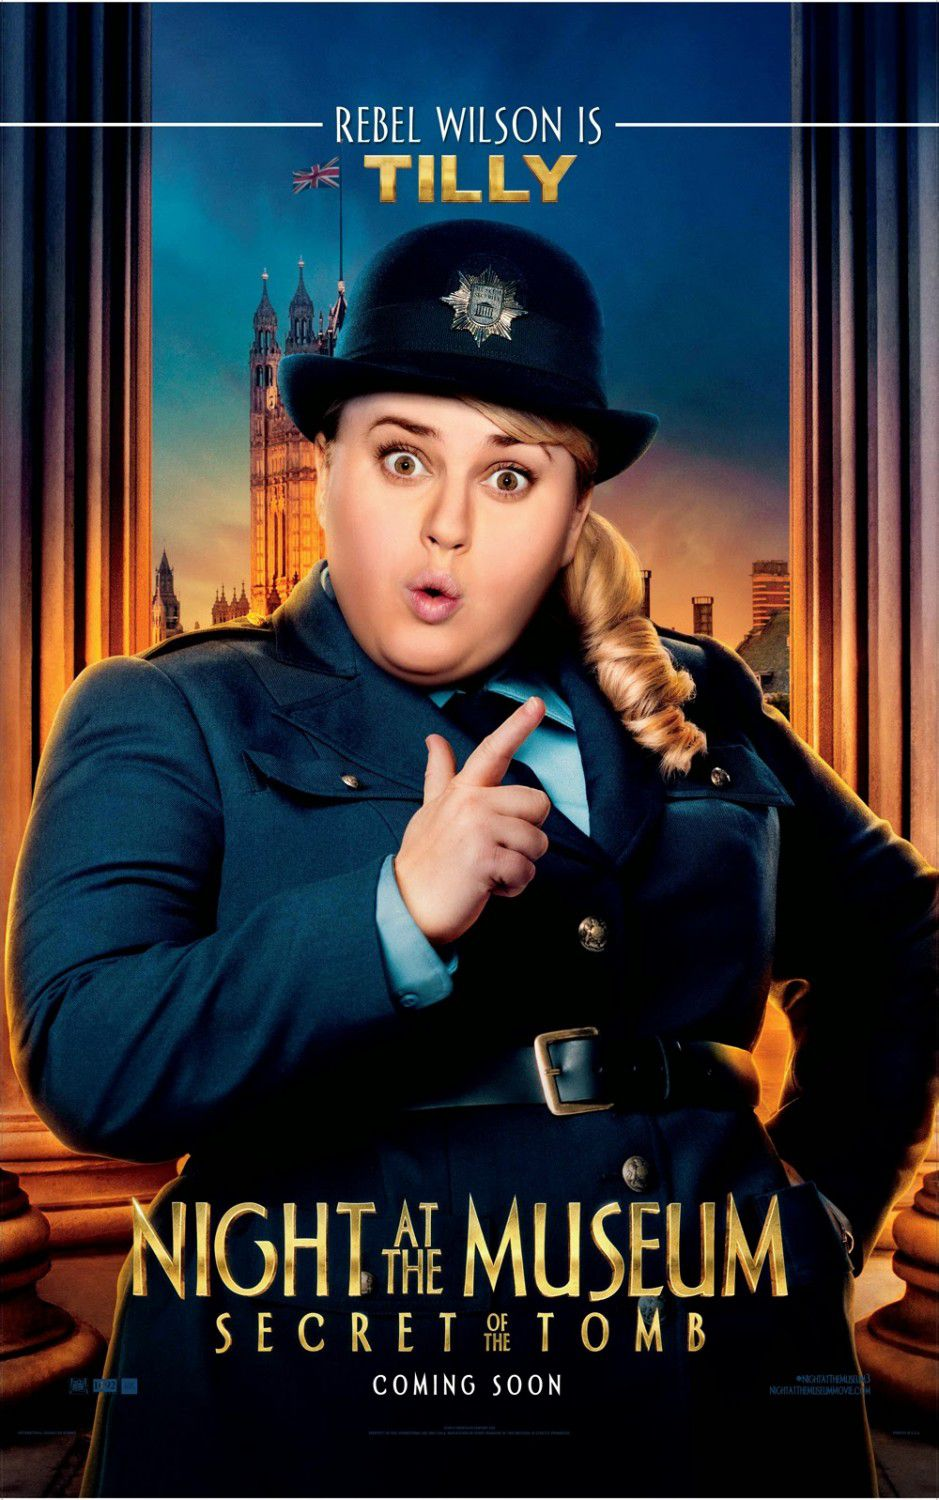 Una Notte al Museo 3 - Night at the Museum 3 - Secret of the Tomb - poster - Tilly (Rebel Wilson)